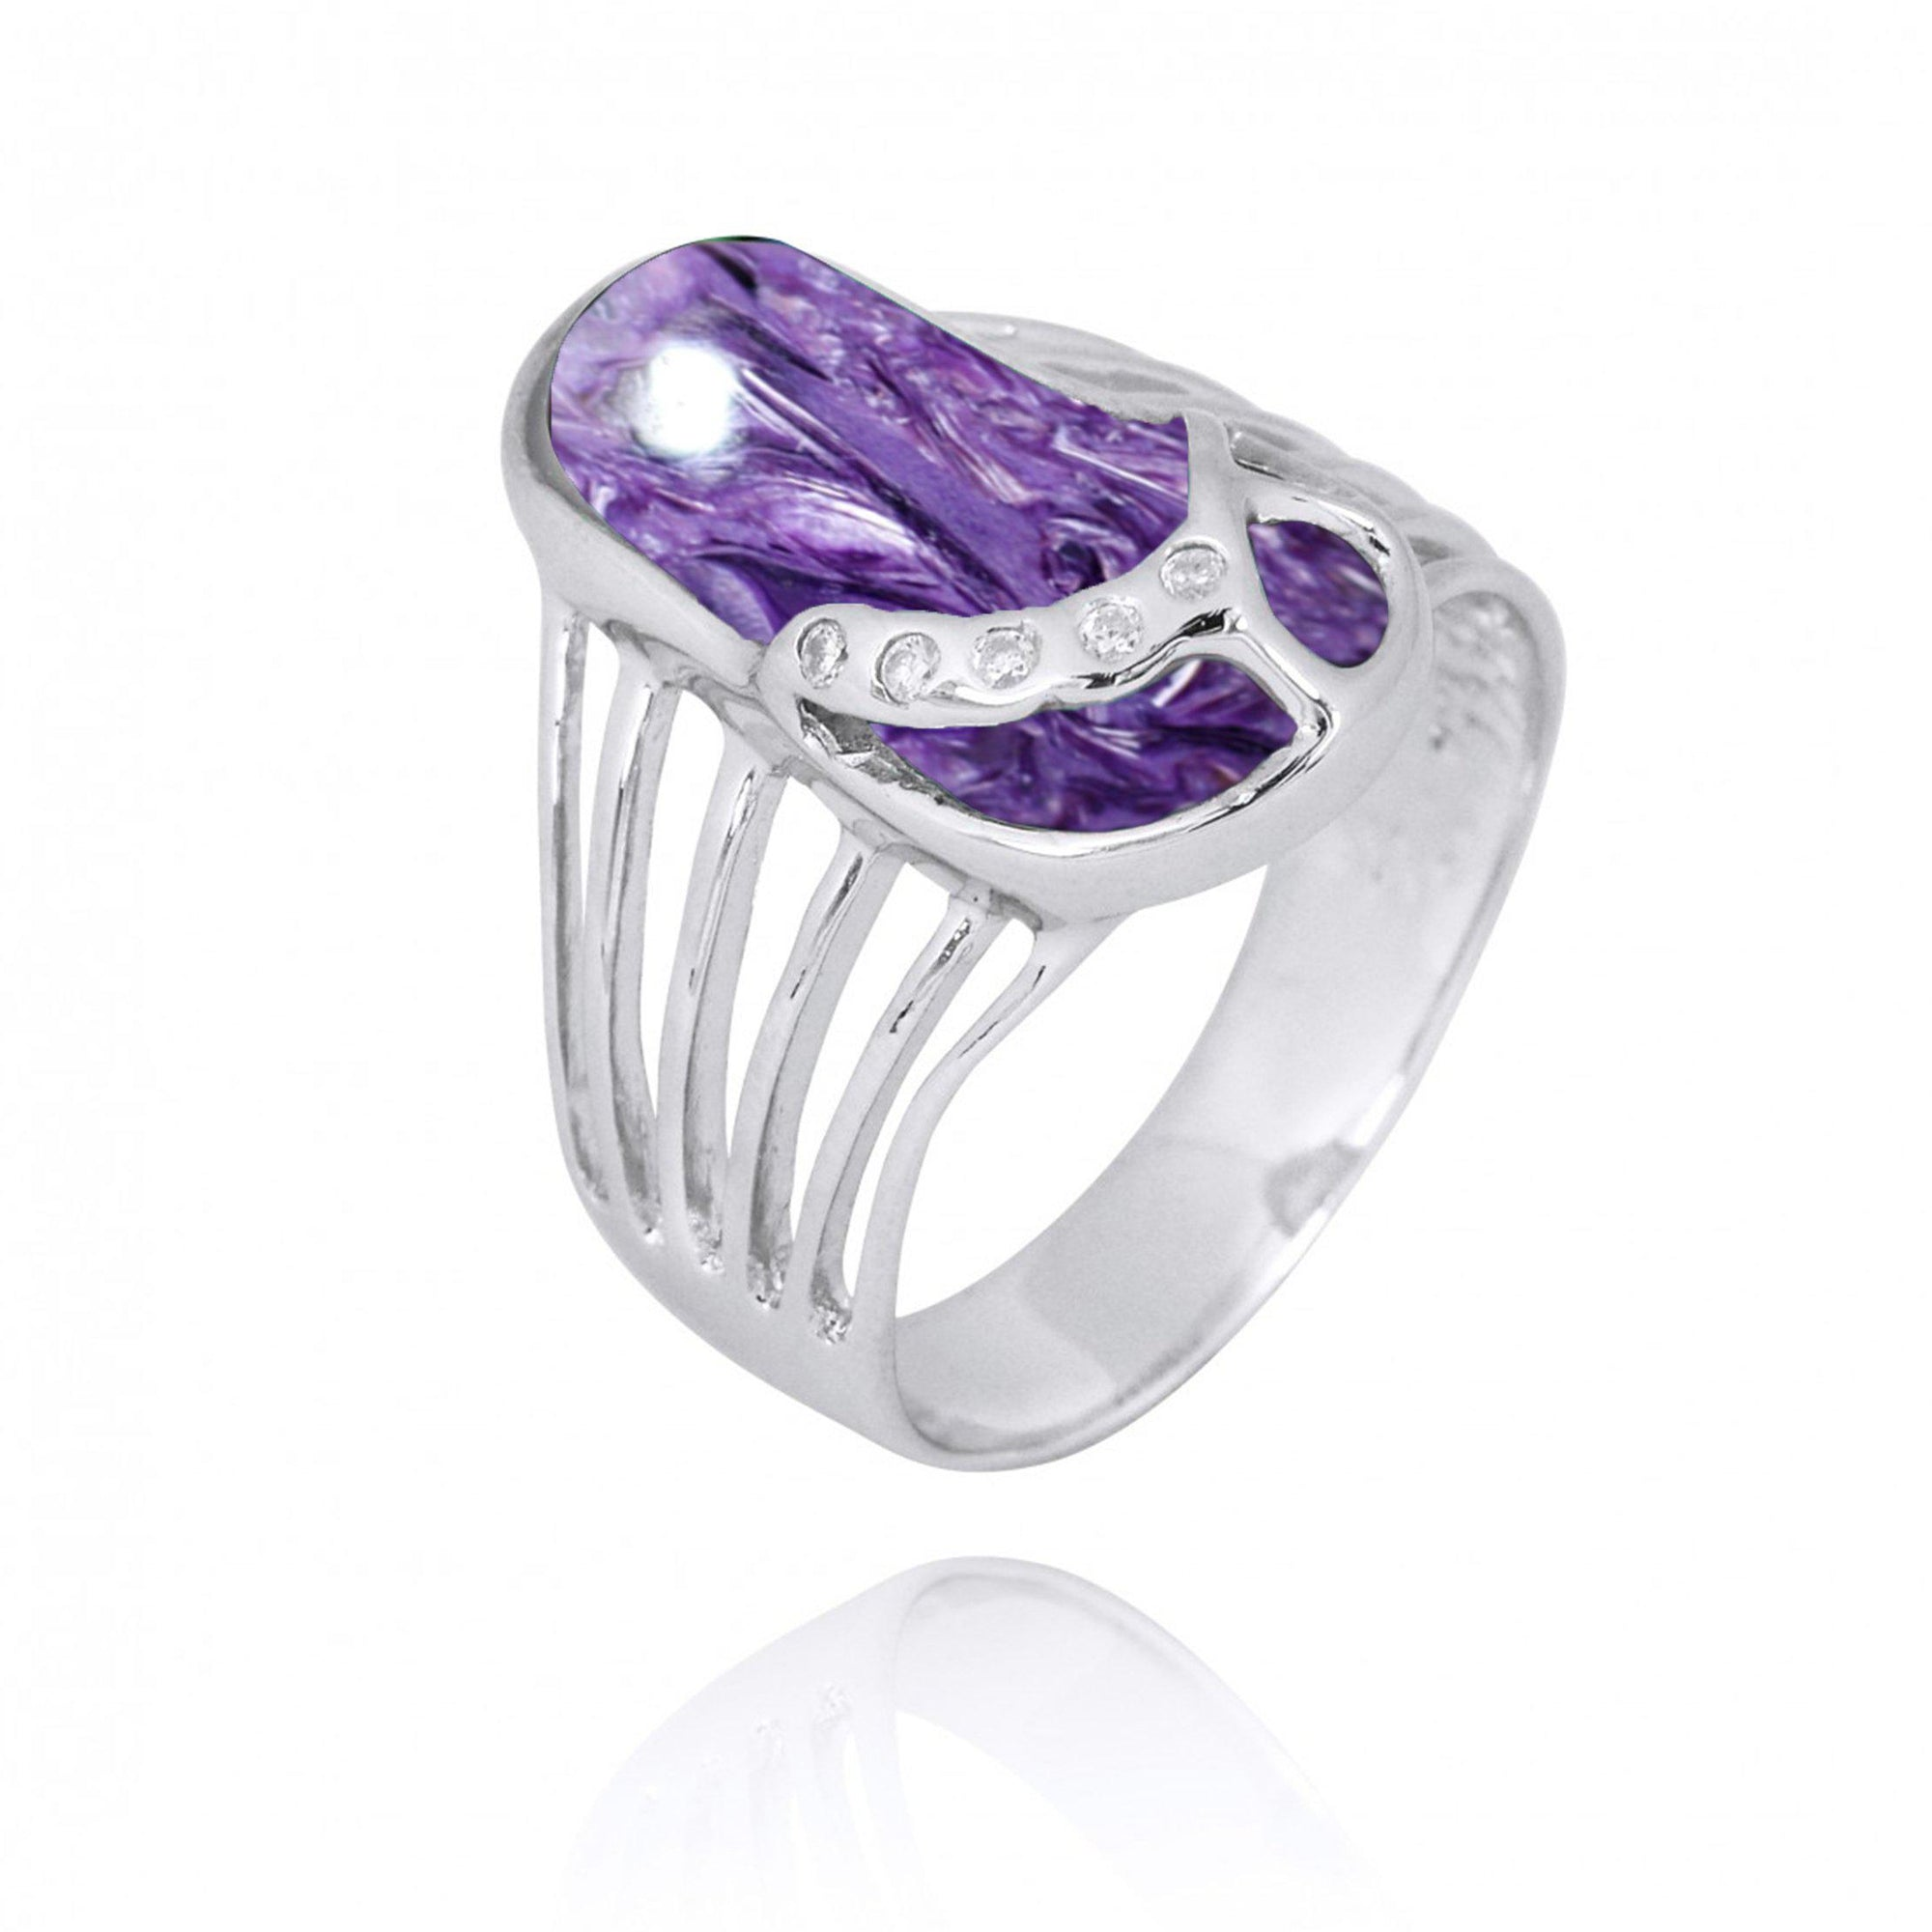 Ring-Sterling Silver Flip Flop Ring with Charoite and White CZ-Coastal Passion